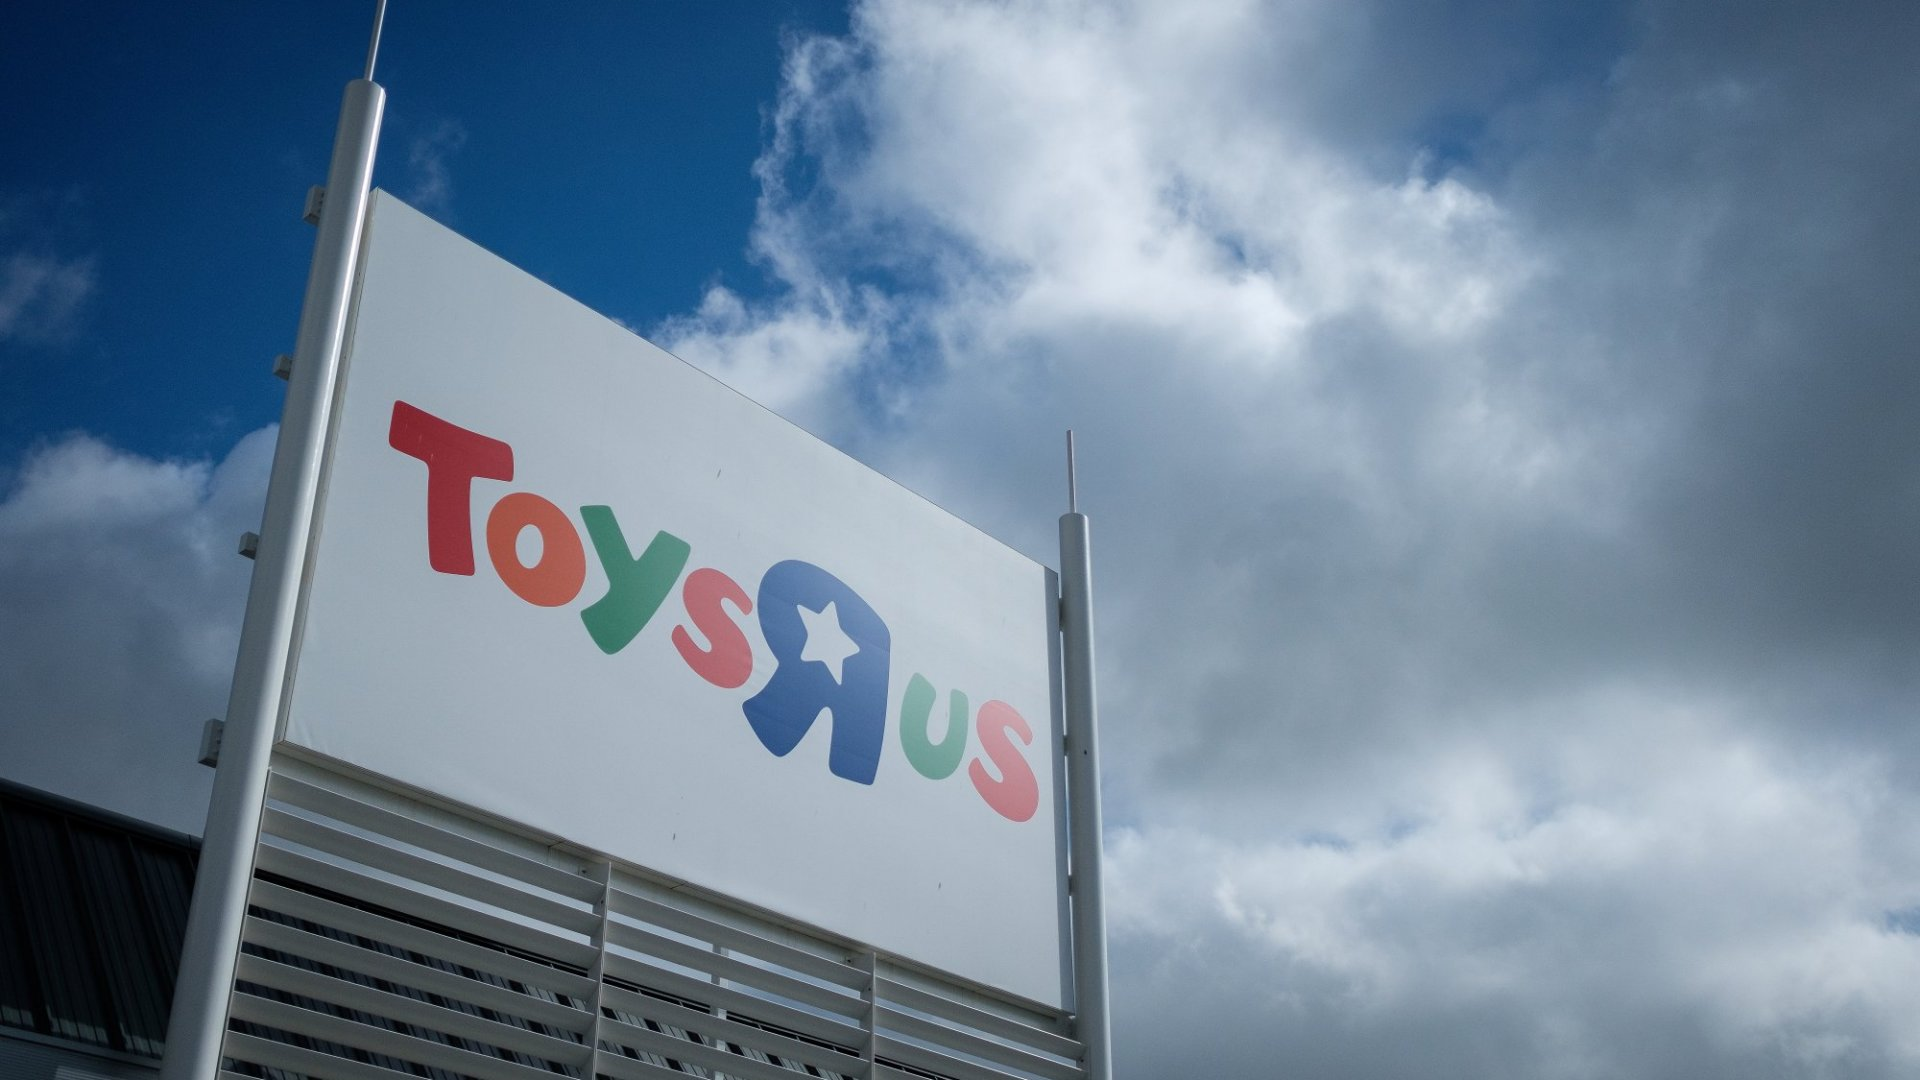 Here's the 1 Most Stunning Thing to Know About the Founder of Toys 'R' Us, Who Died This Week